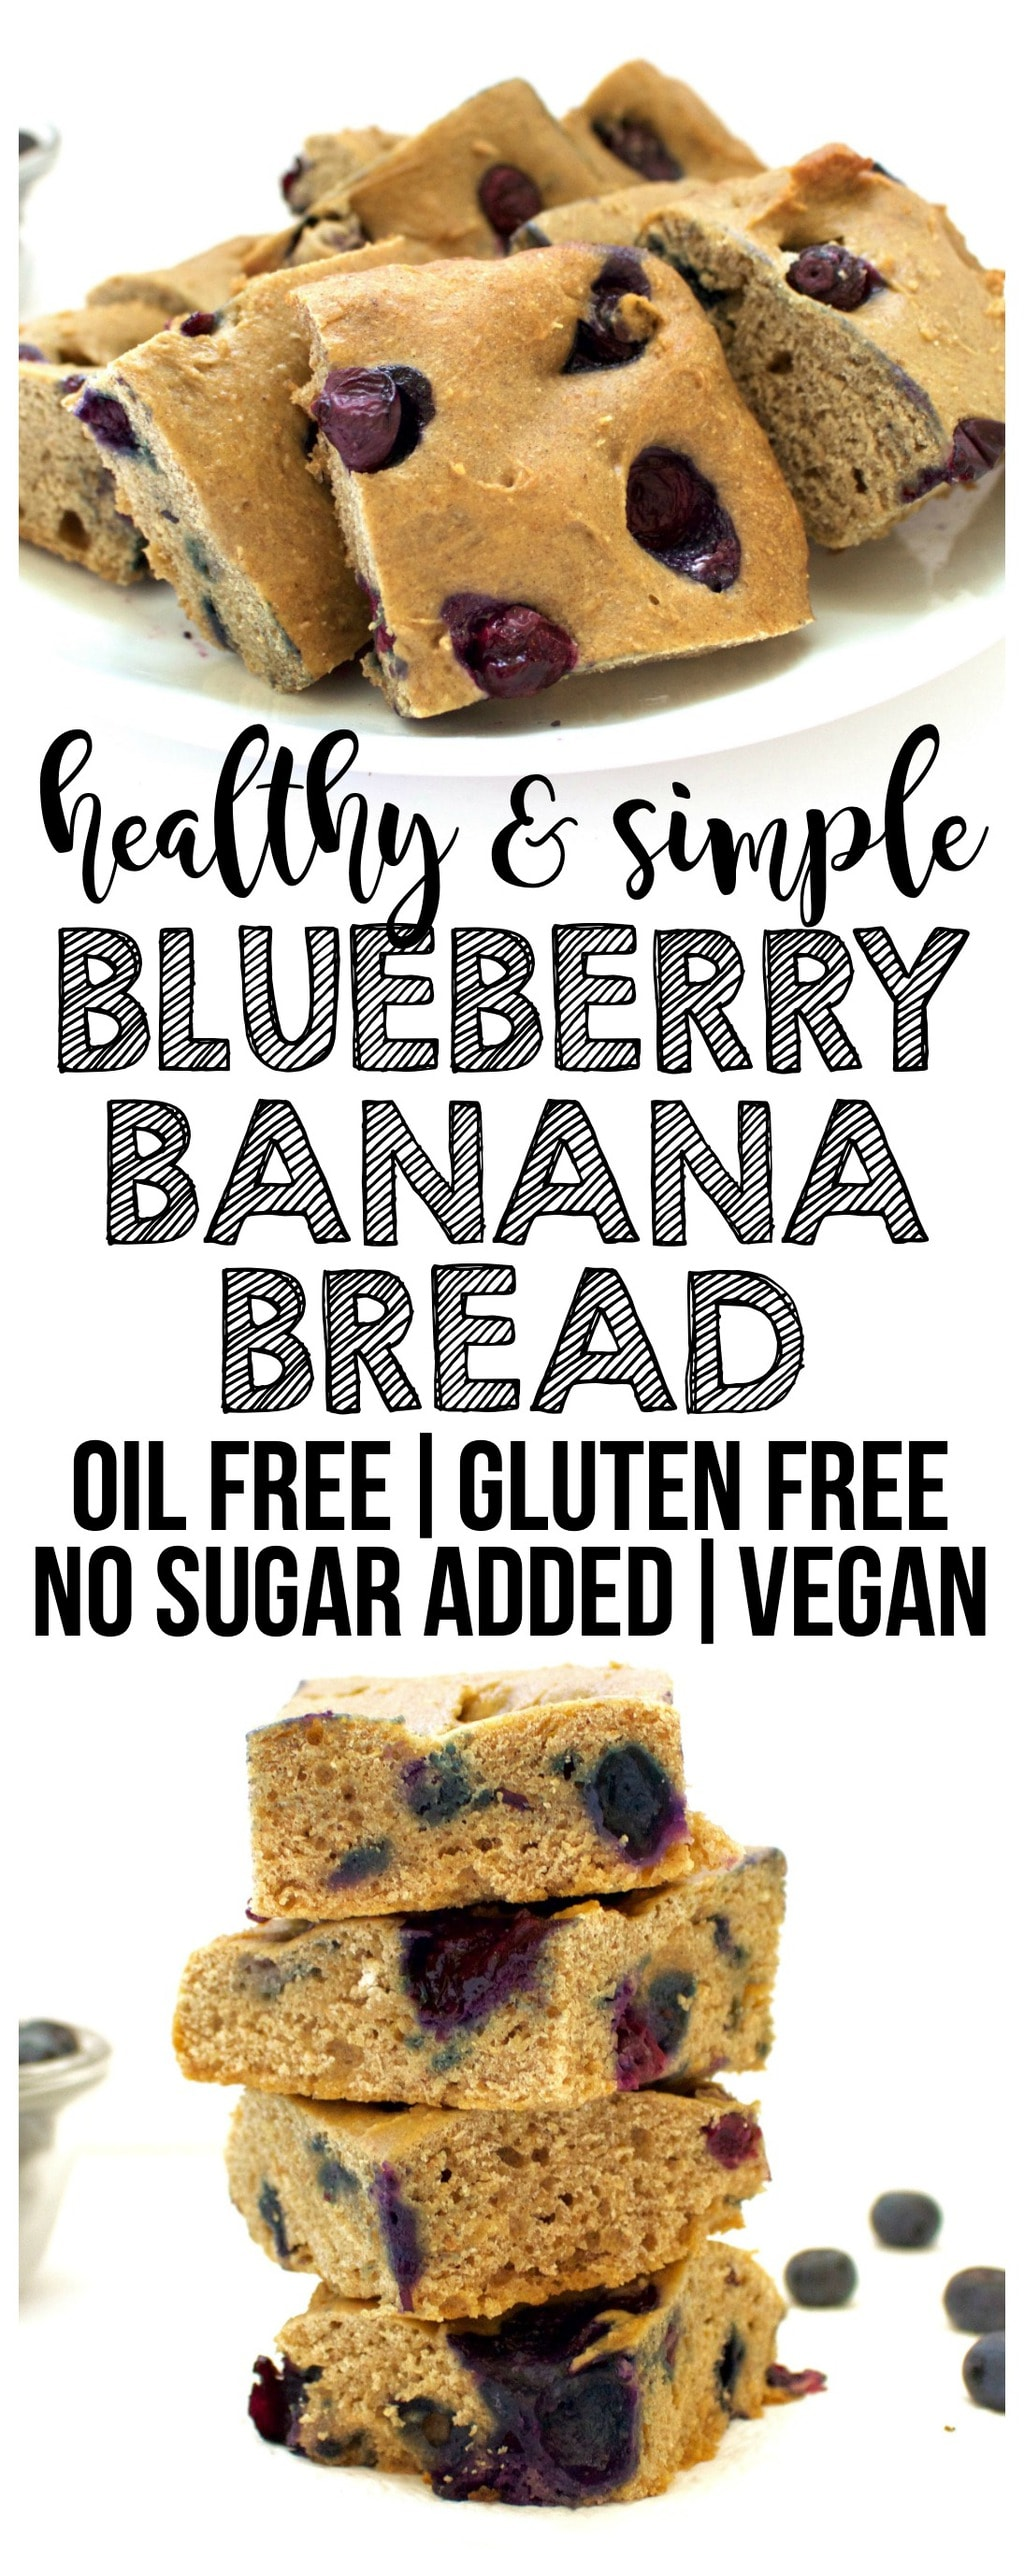 This Vegan Blueberry Banana Bread is SO DELISH! It is oil-free, low-fat, dairy-free, egg-free, gluten-free optional, and contains no added sugar. Super easy to make, too!